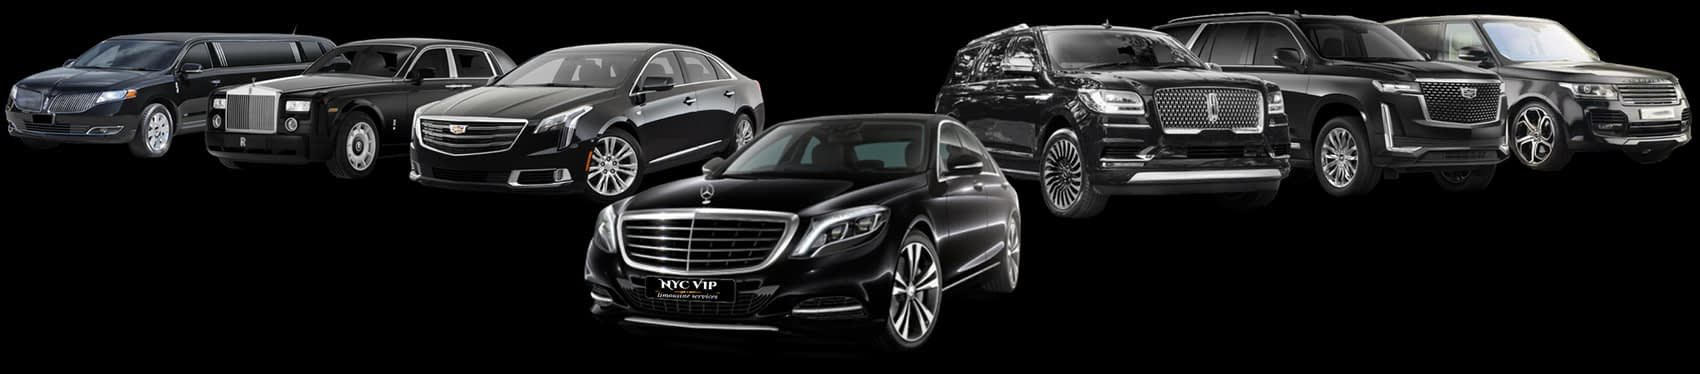 NYC VIP Limousine Services Front Image